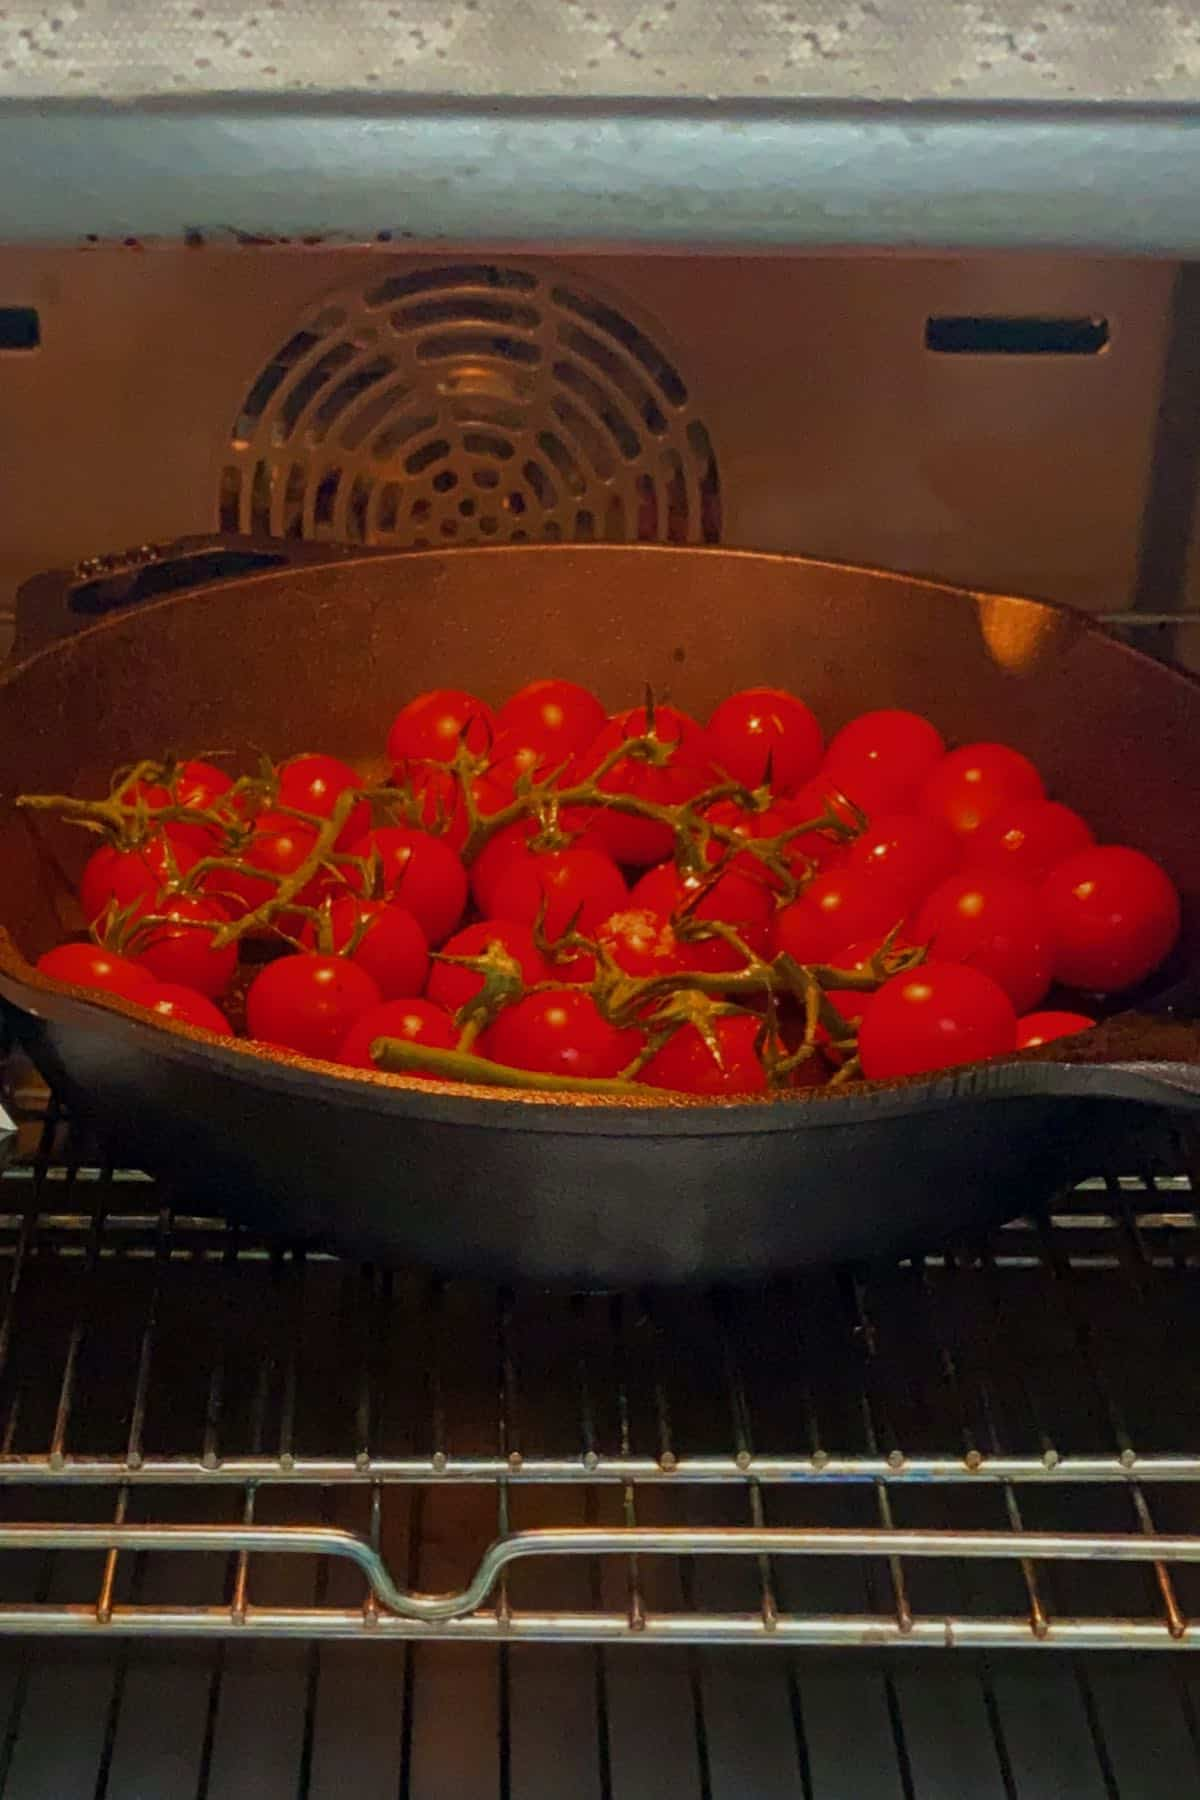 Roasting tomatoes in the oven